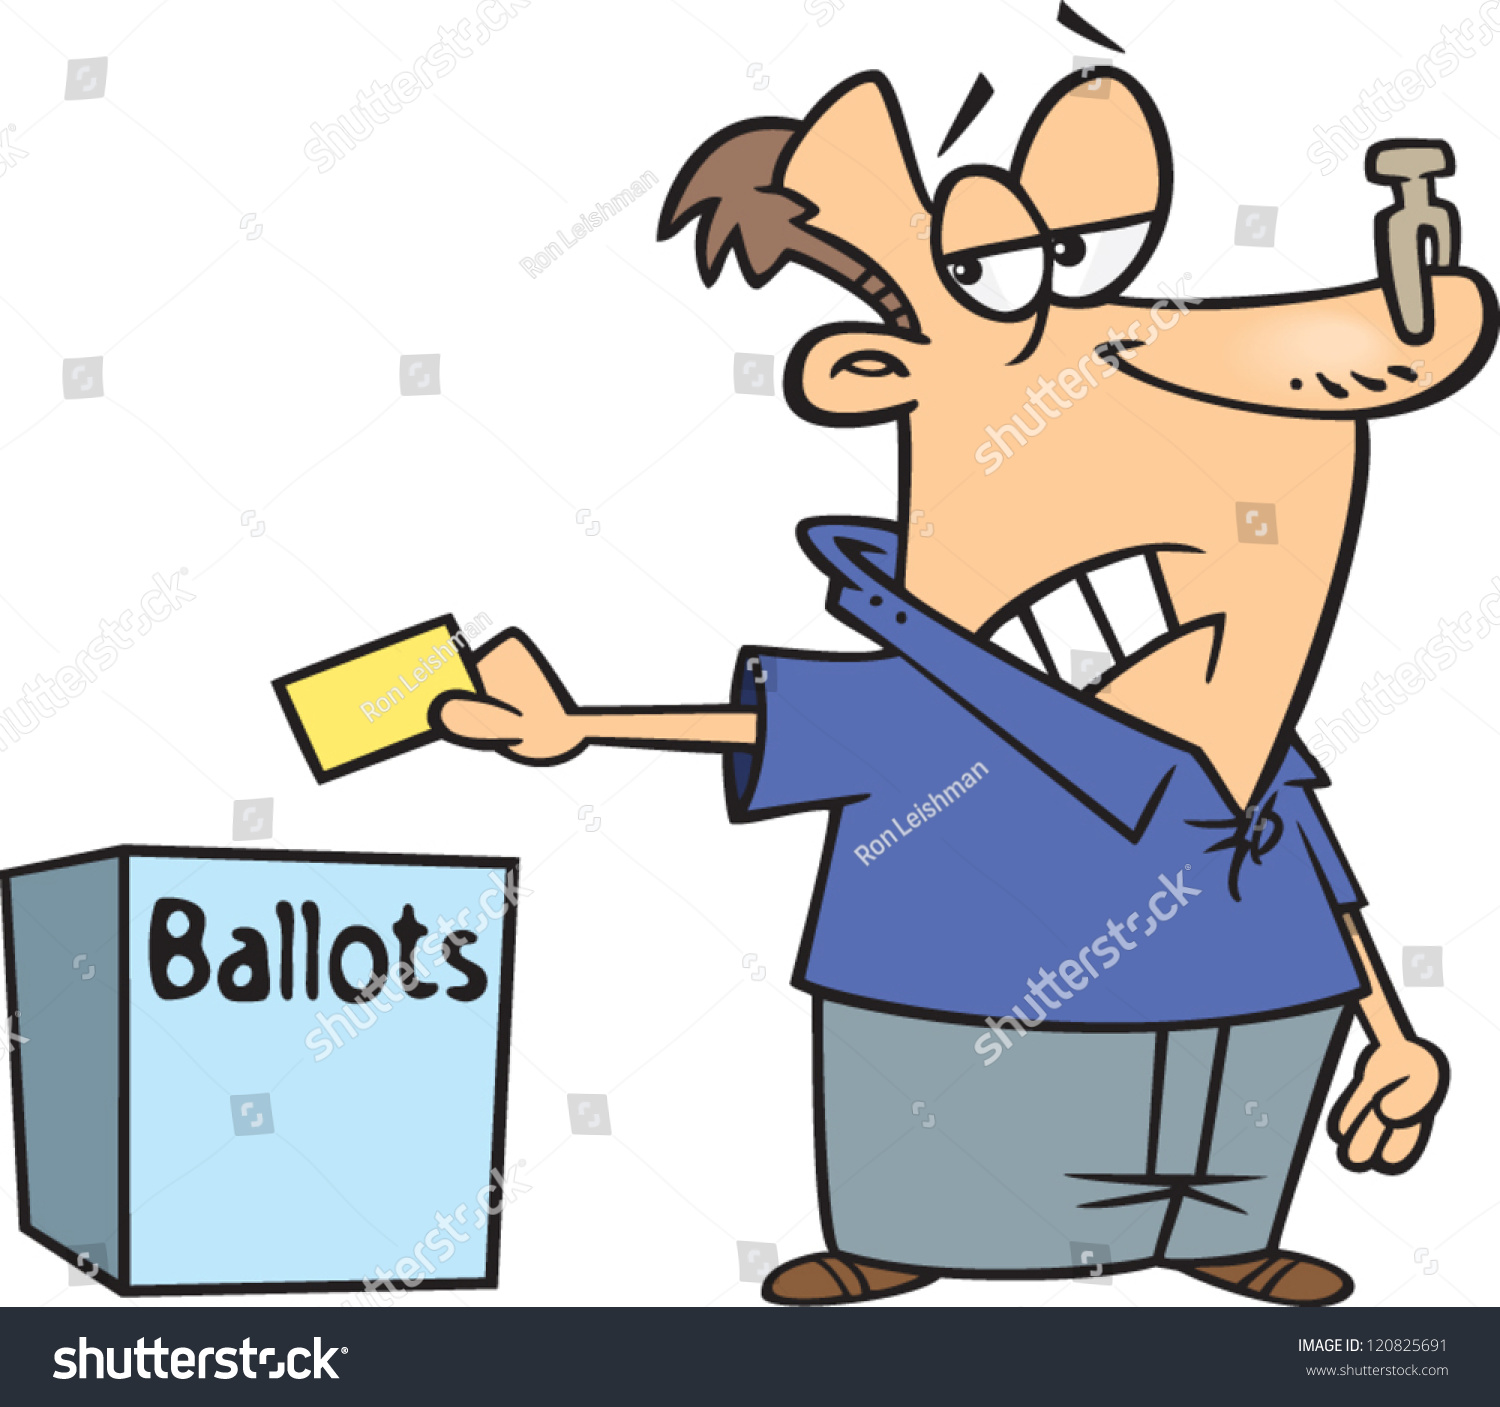 cartoon man casting his vote in a ballot box with a nose plug on